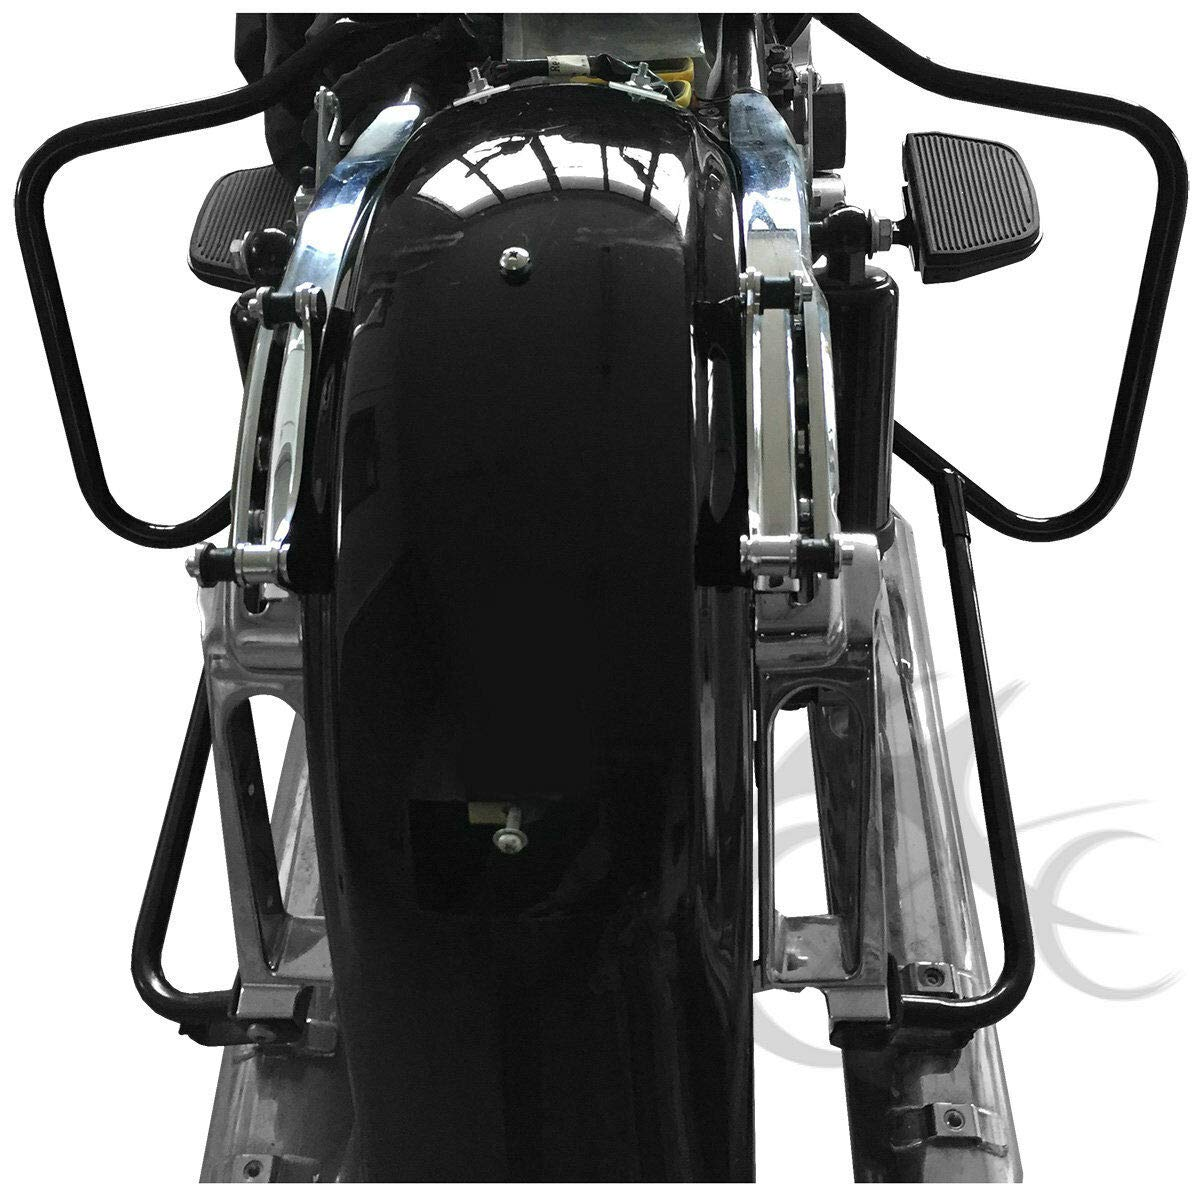 TCT-MT Saddlebag Bracket Guard Crash Bar Support fit For Harley Road King FLHR Street glide FLHX Special FLHXS Ultra Limited FLHTK CVO FLHTKSE 2014-2020; Road Glide FLTRX FLTRXS FLHXSE 2015-2020 Black